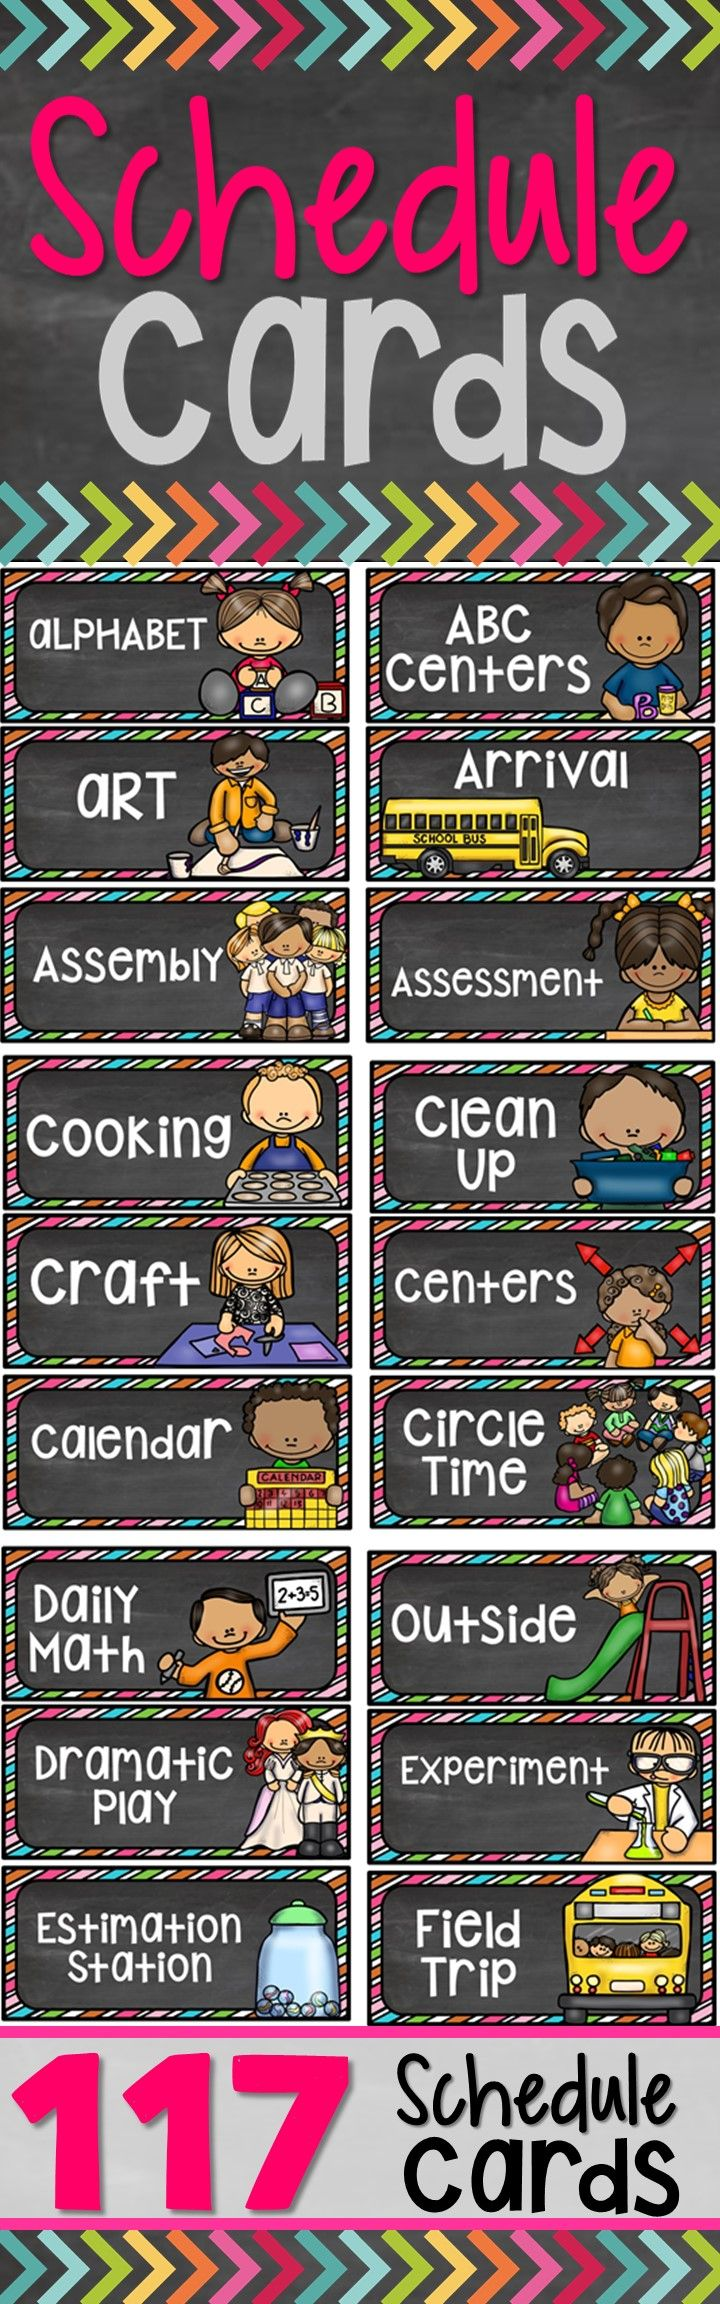 This Schedule Cards Pack includes TWO versions : (117 editable & 117 non-editable schedule cards). Choose which one will work best for your classroom.  The Daily Schedule is designed to provide structure and accountability to the students, yet allow freedom and flexibility.   How to use: Just print, laminate, and you are ready to go!